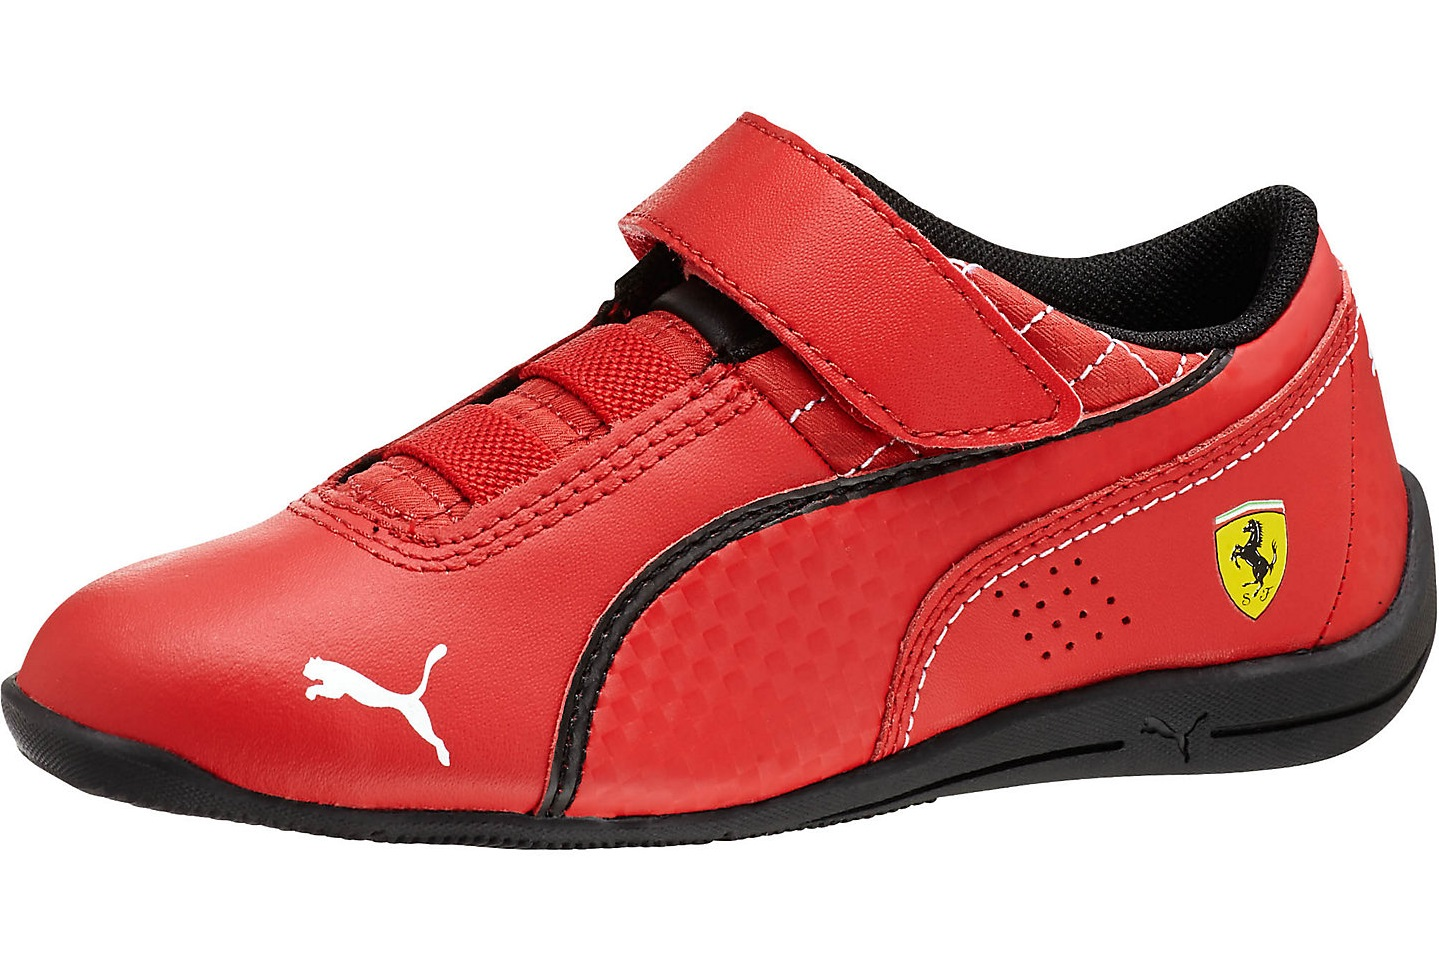 Buty PUMA DRIFT CAT 6 SF V KIDS FERRARI na rzep 28